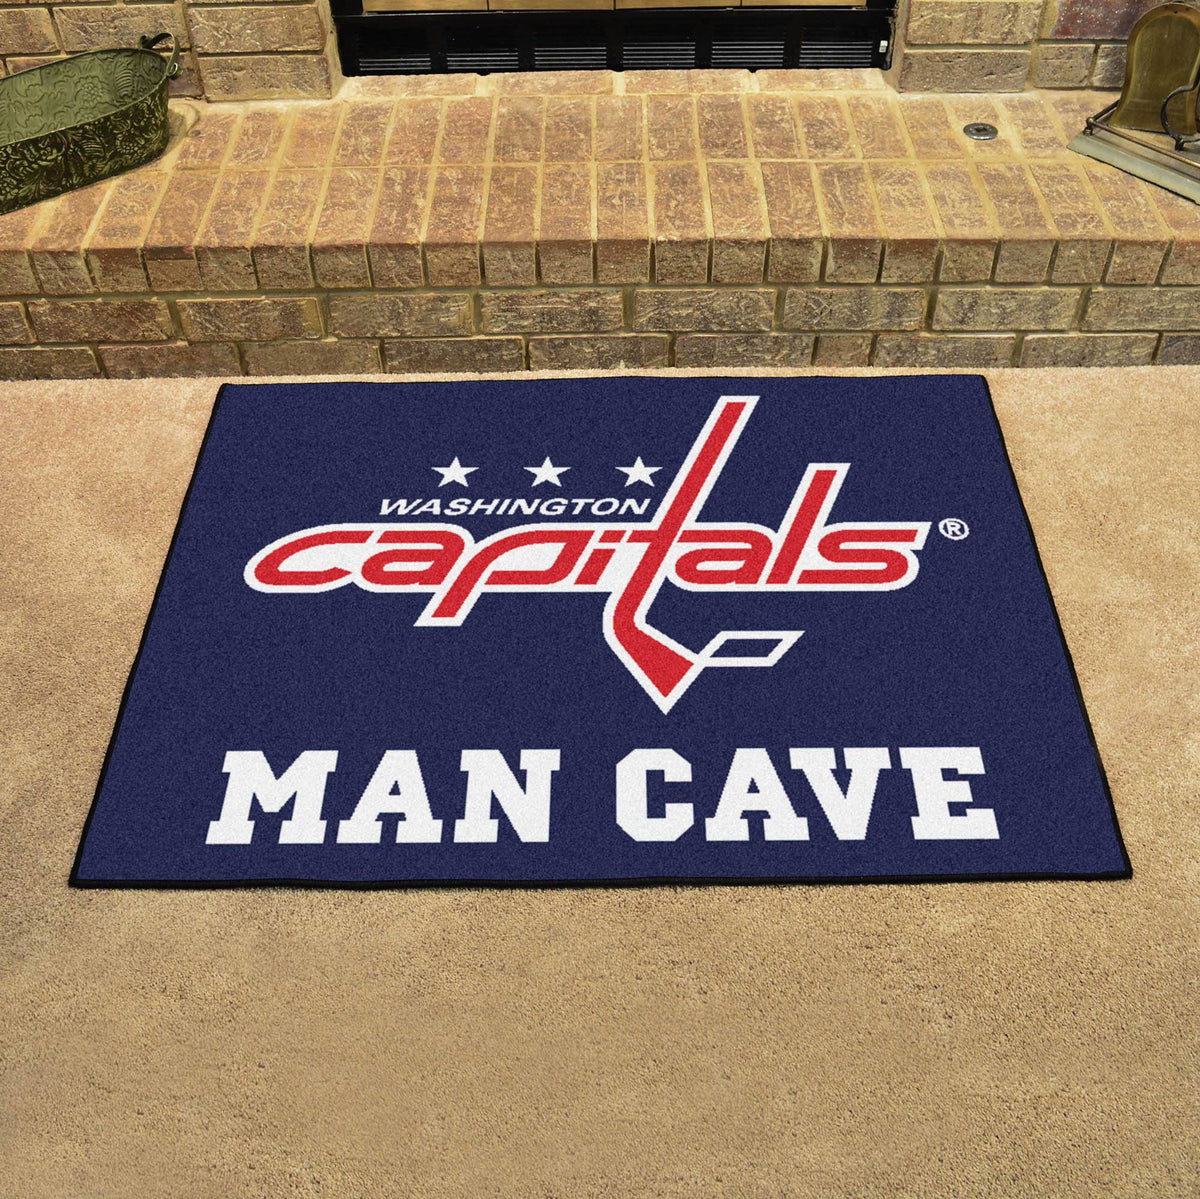 NHL - Man Cave All-Star NHL Mats, Rectangular Mats, Man Cave All-Star Mat, NHL, Home Fan Mats Washington Capitals